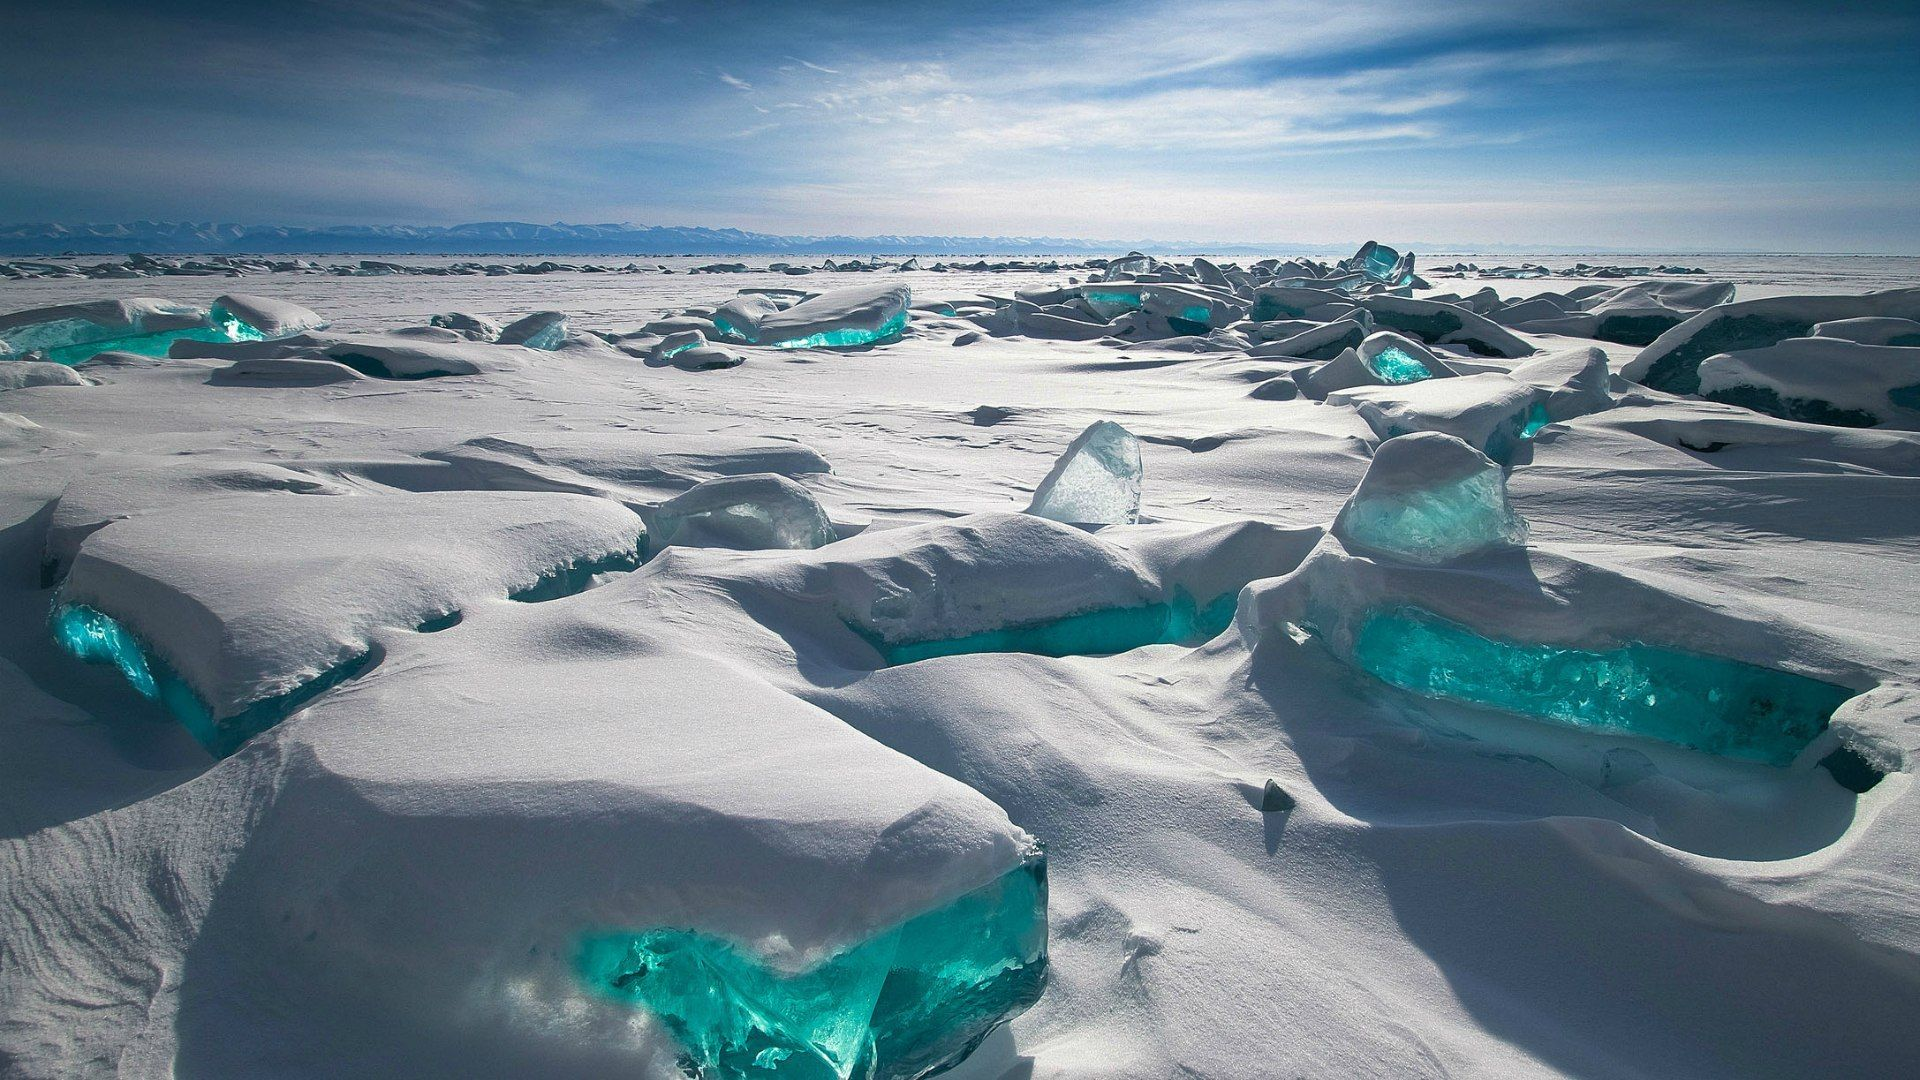 Lake Baikal Turquoise Ice In The Winter